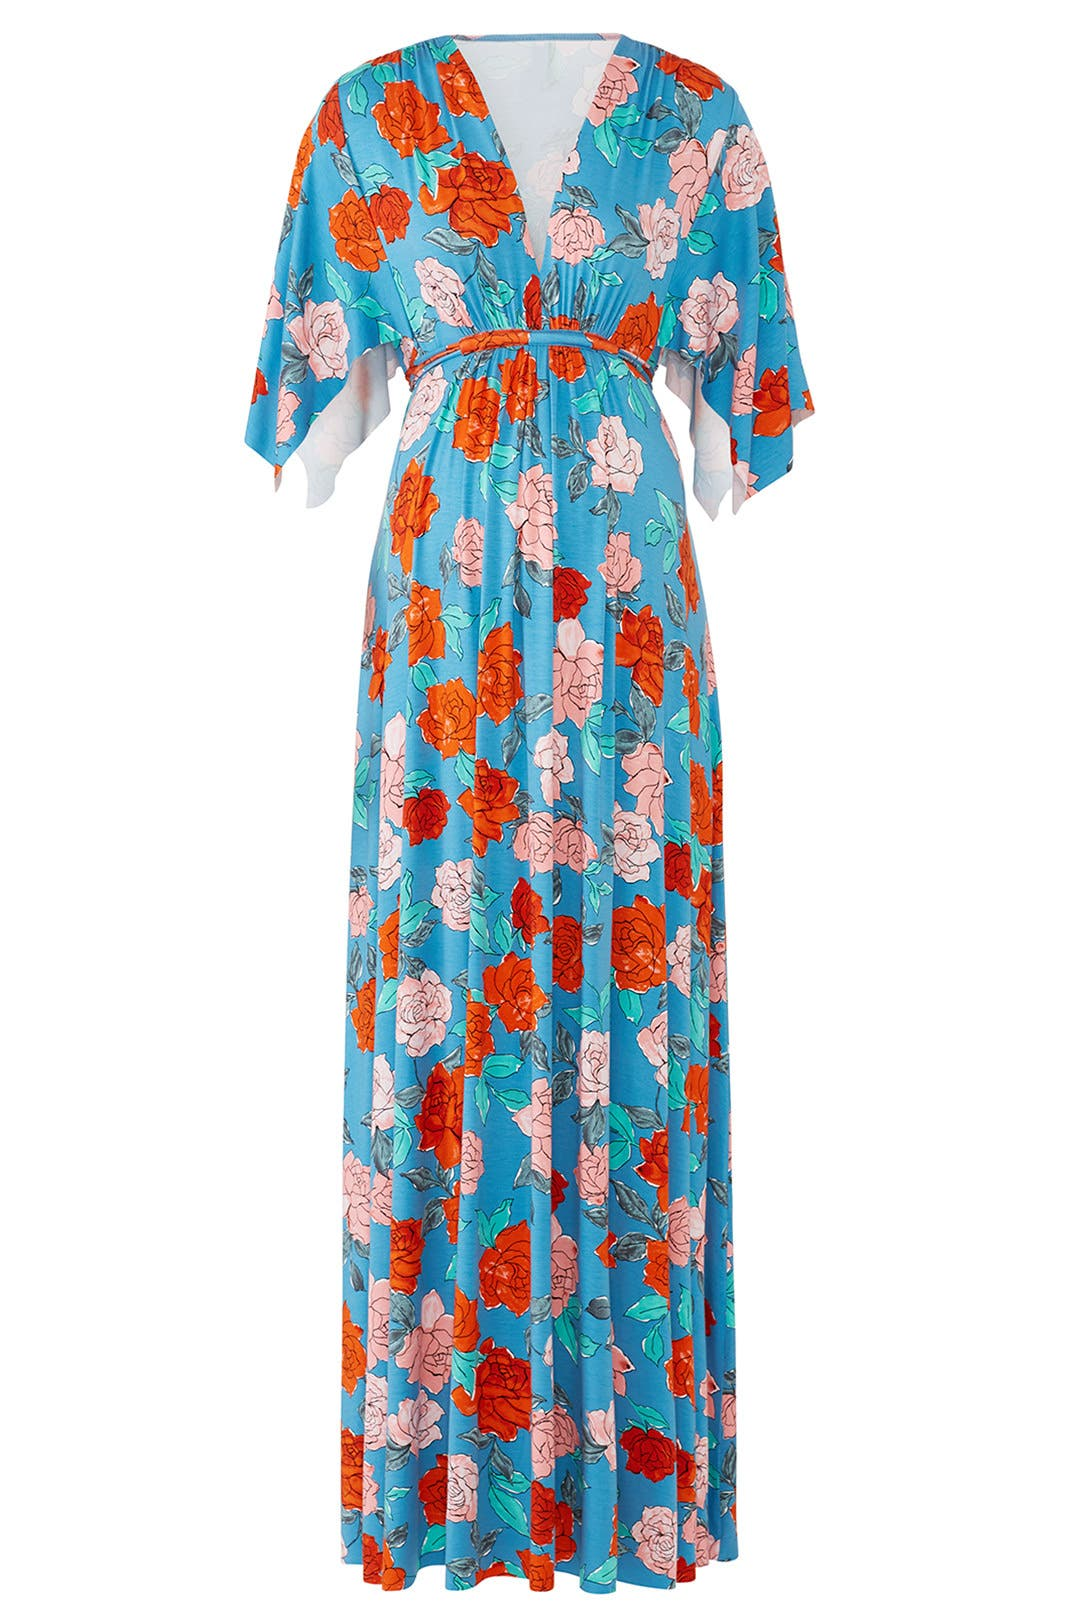 Blue Rose Maternity Maxi By Rachel Pally For 40 Rent The Runway